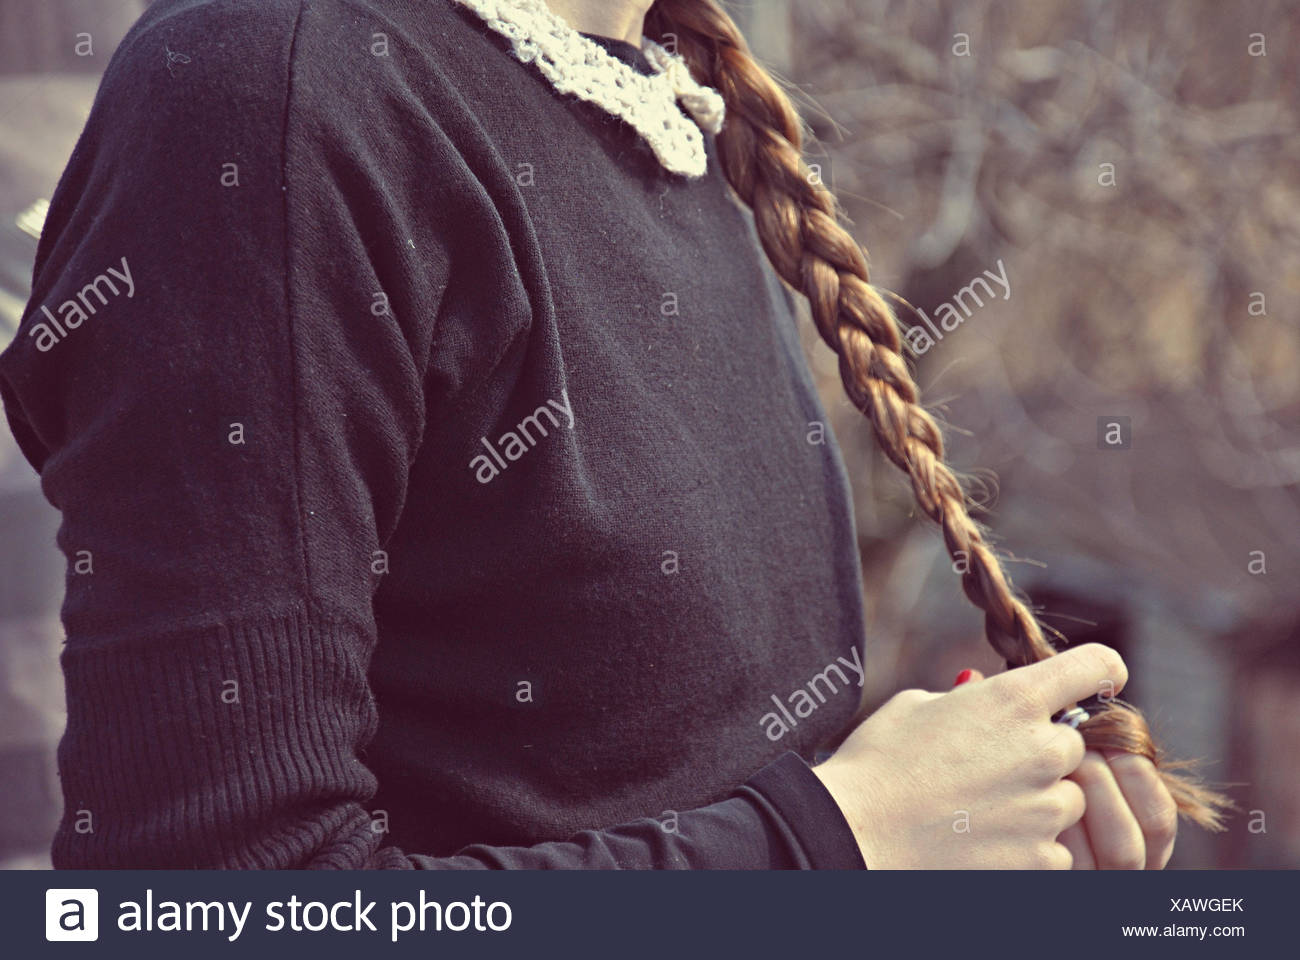 Girl playing with her braid - Stock Image